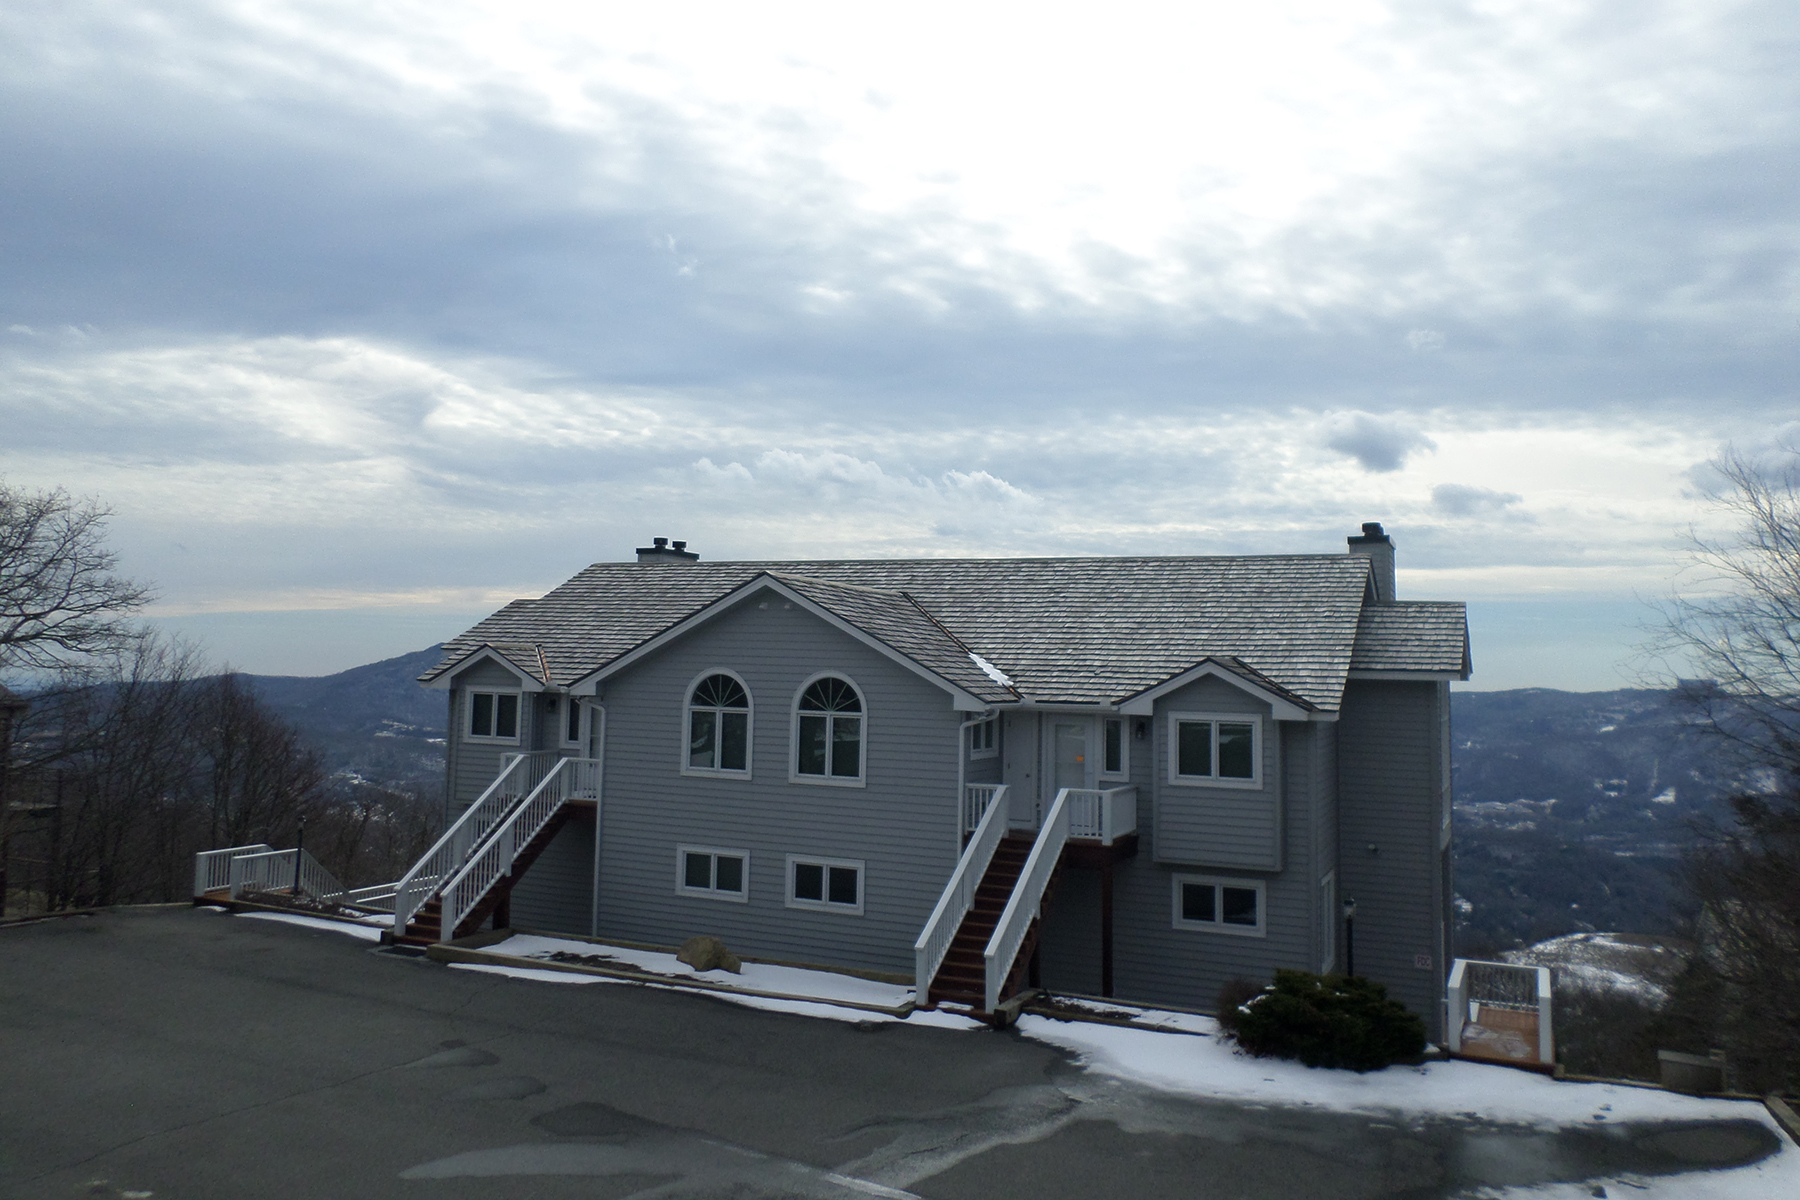 共管式独立产权公寓 为 销售 在 BEECH MOUNTAIN - SOUTHCREST CONDOMINIUMS 510 Elderberry Ridge Rd Beech Mountain, 北卡罗来纳州, 28604 美国